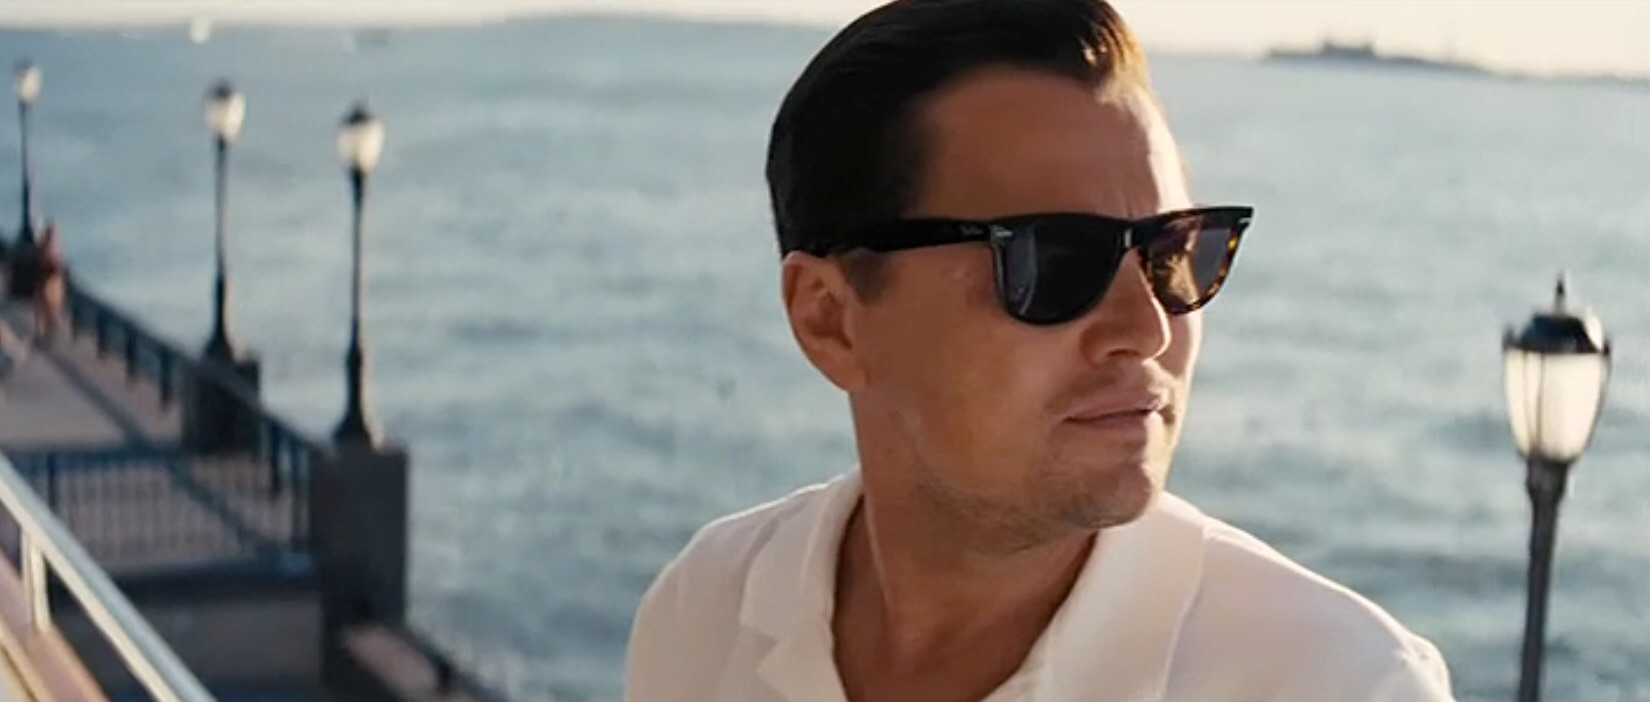 1.)RAY Ban RB4147 Wayfarer : They were iconic before the movie and even more so after the Wolf. Look great on an oval/square face.